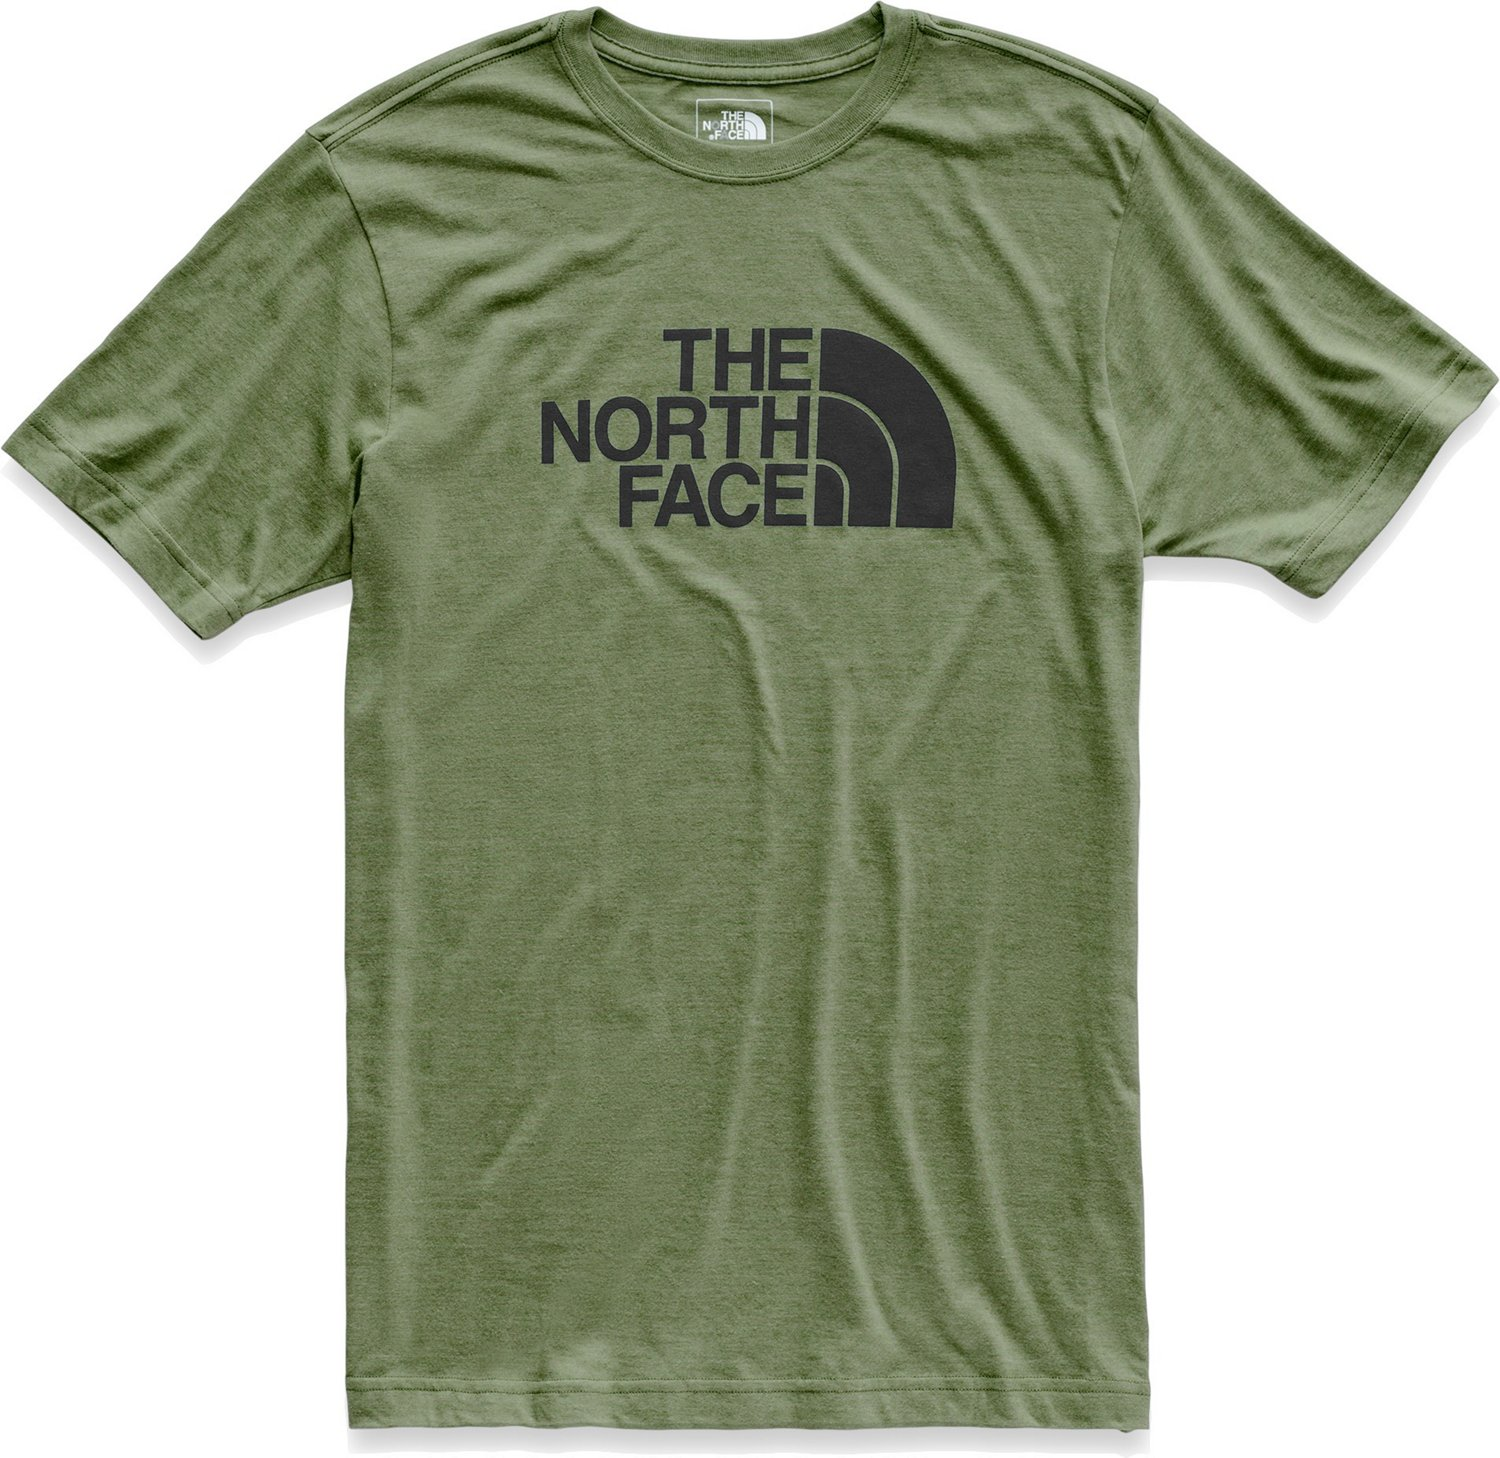 2a13bb16 Display product reviews for The North Face Men's Half Dome Triblend Short  Sleeve T-shirt